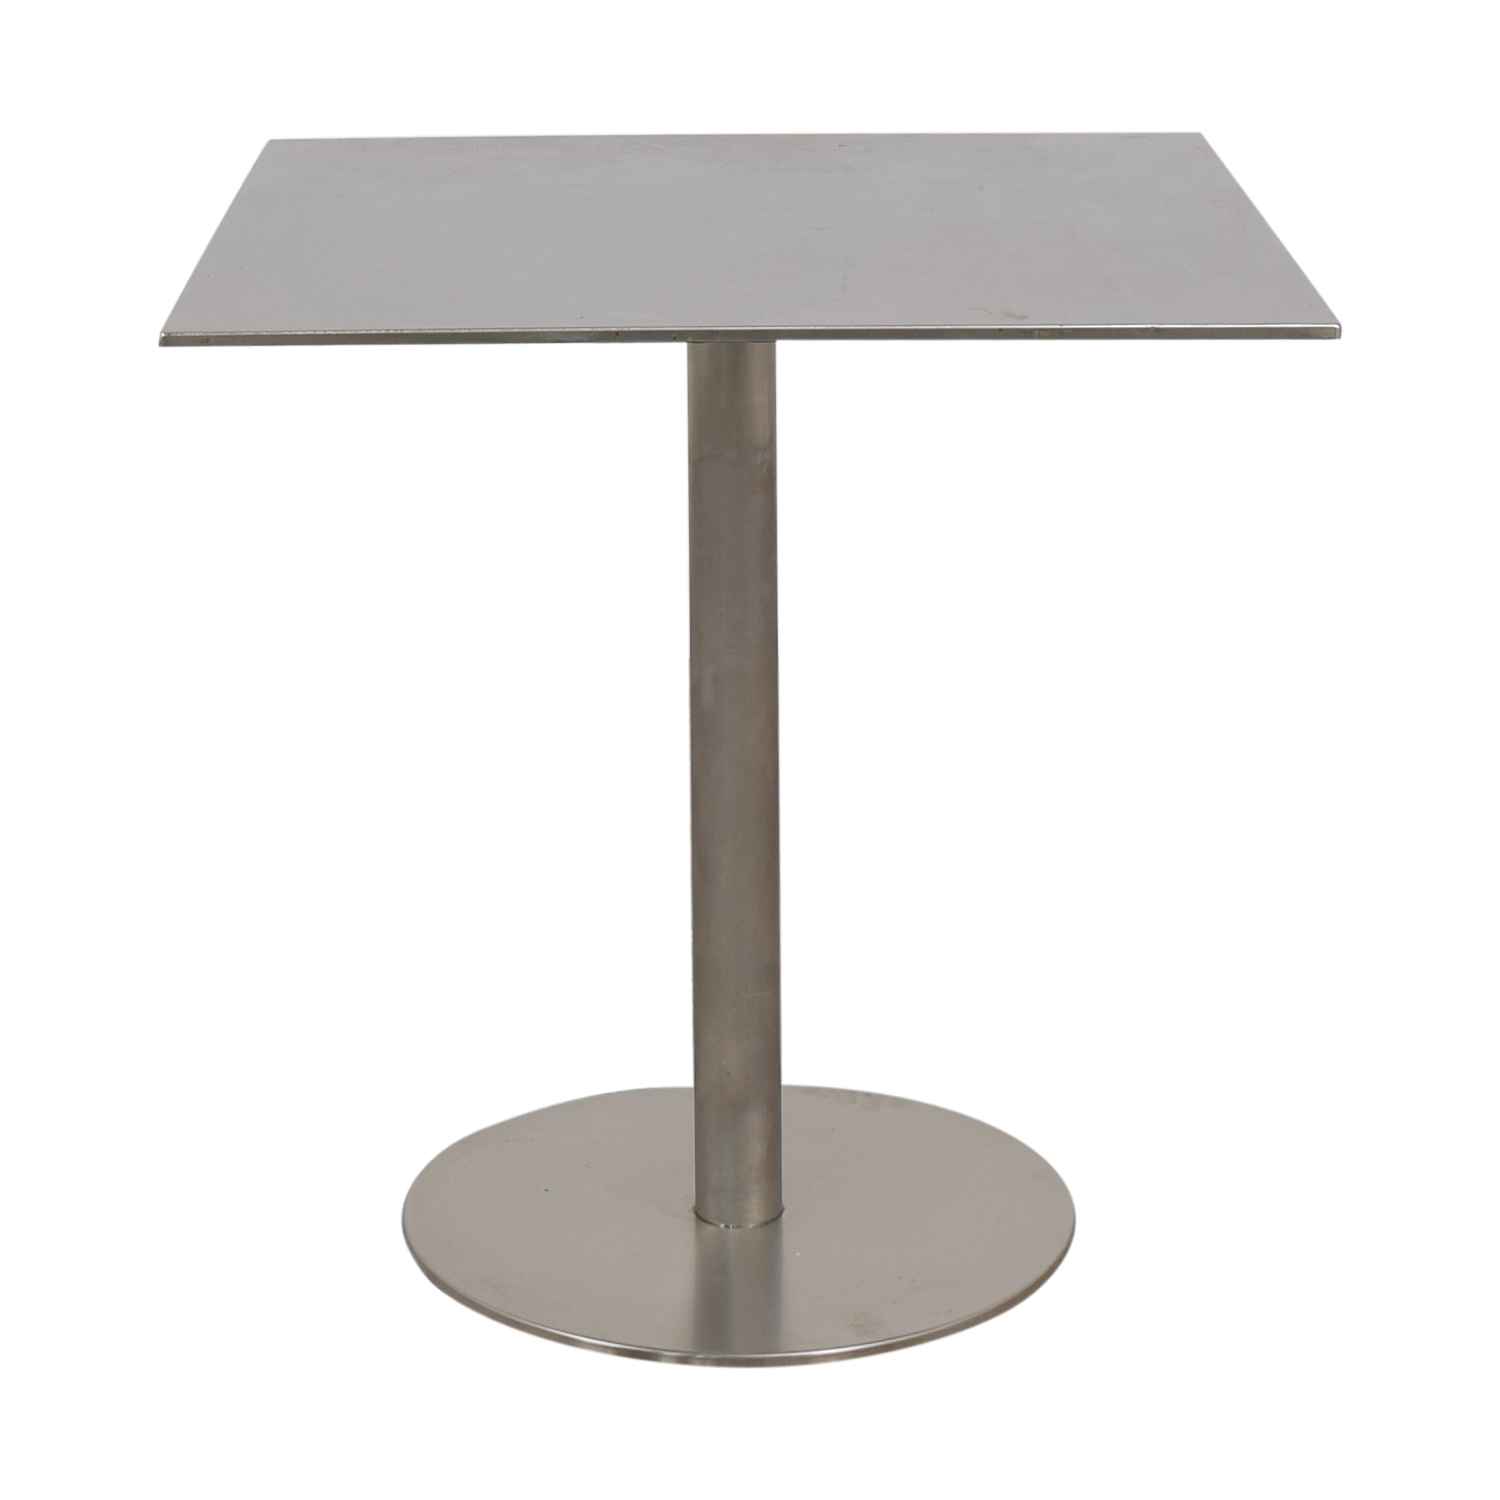 Minotti Minotti Metal Table Dinner Tables